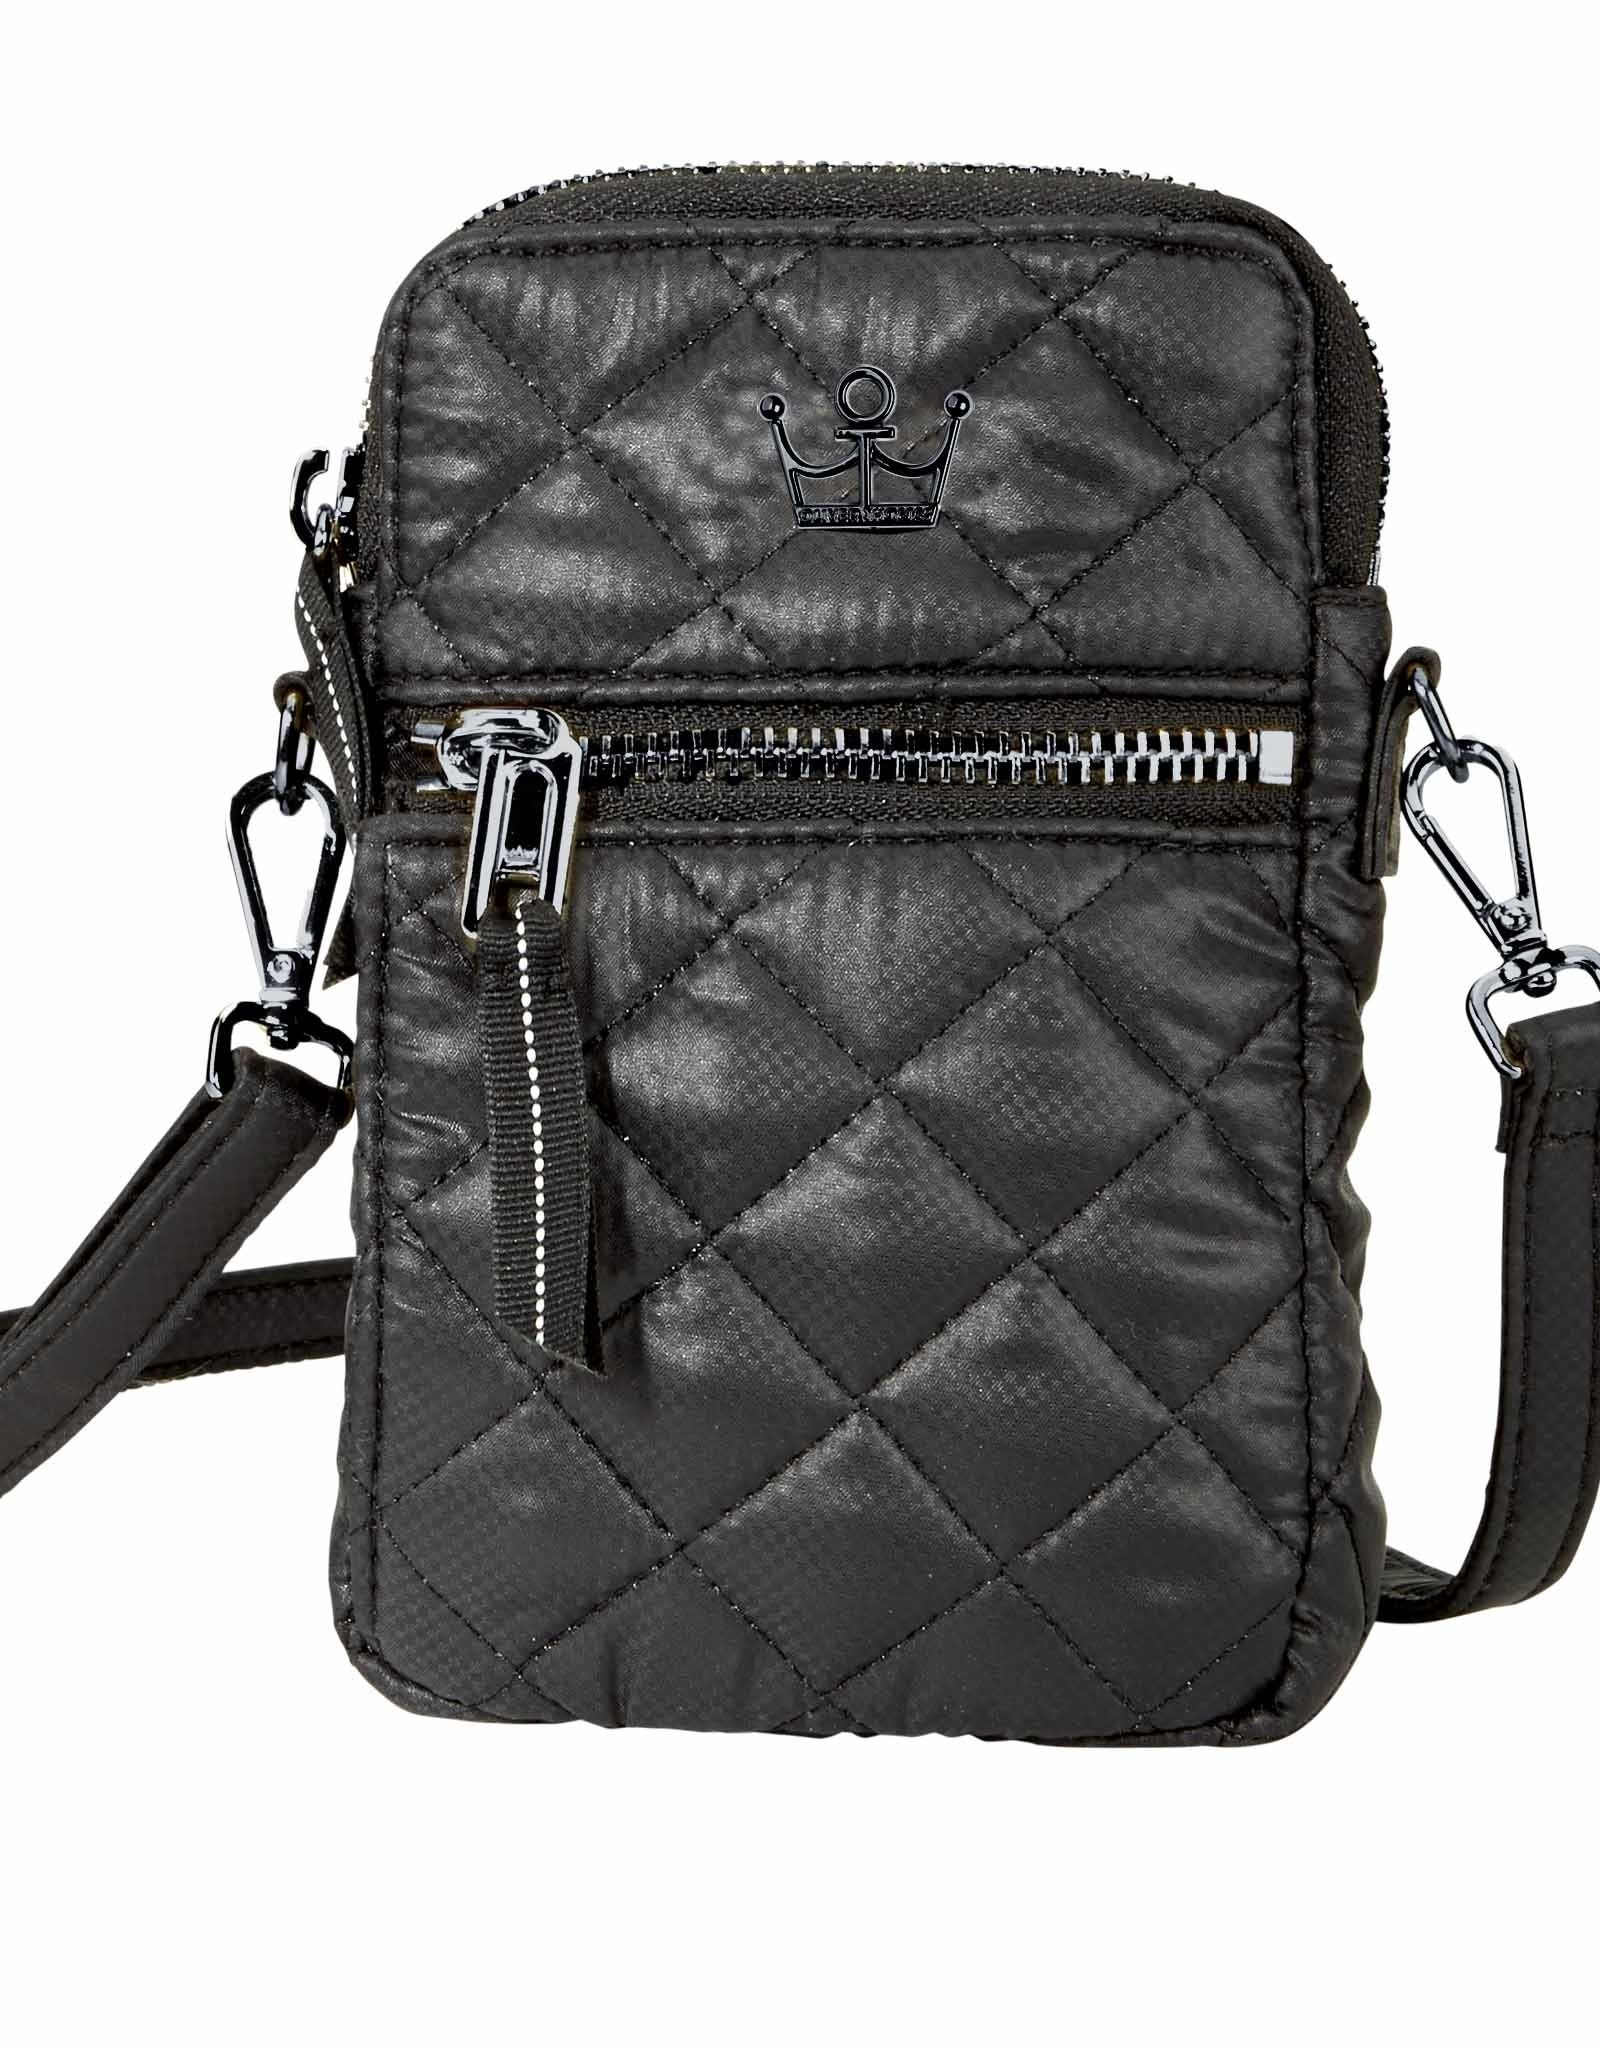 Oliver Thomas Oliver Thomas - 24 + 7 Cellphone Crossbody